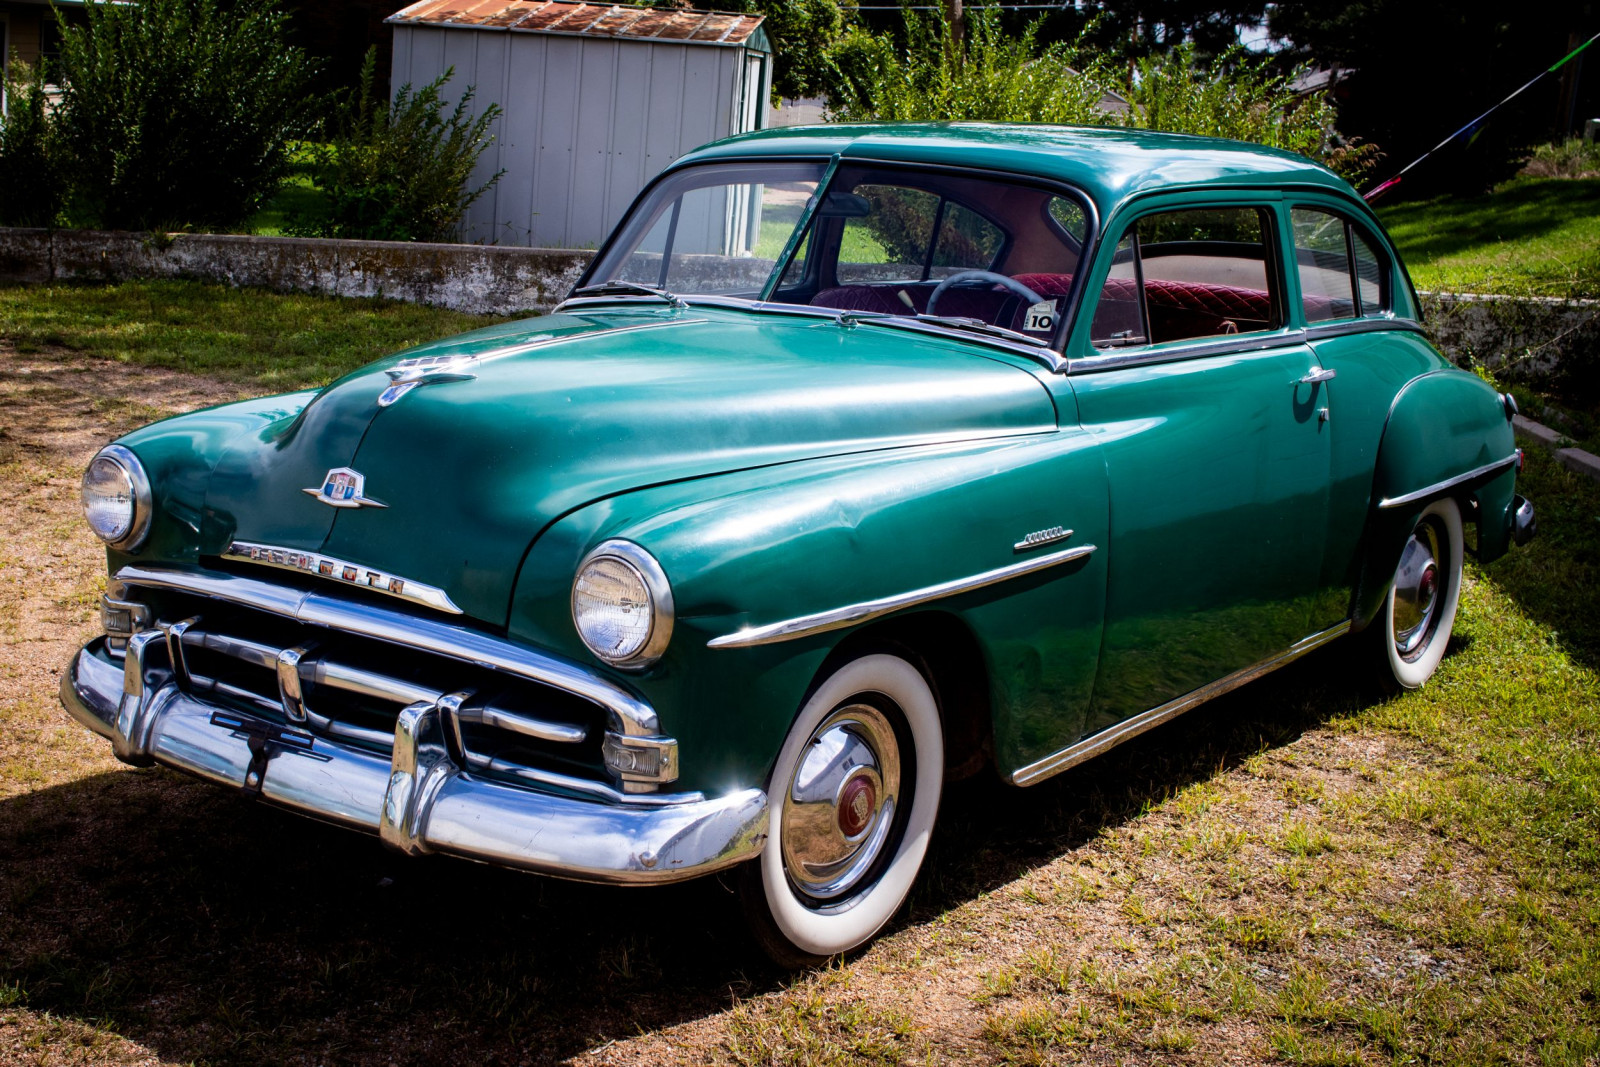 1951 Plymouth Concord P22 2dr Sedan - Image 1